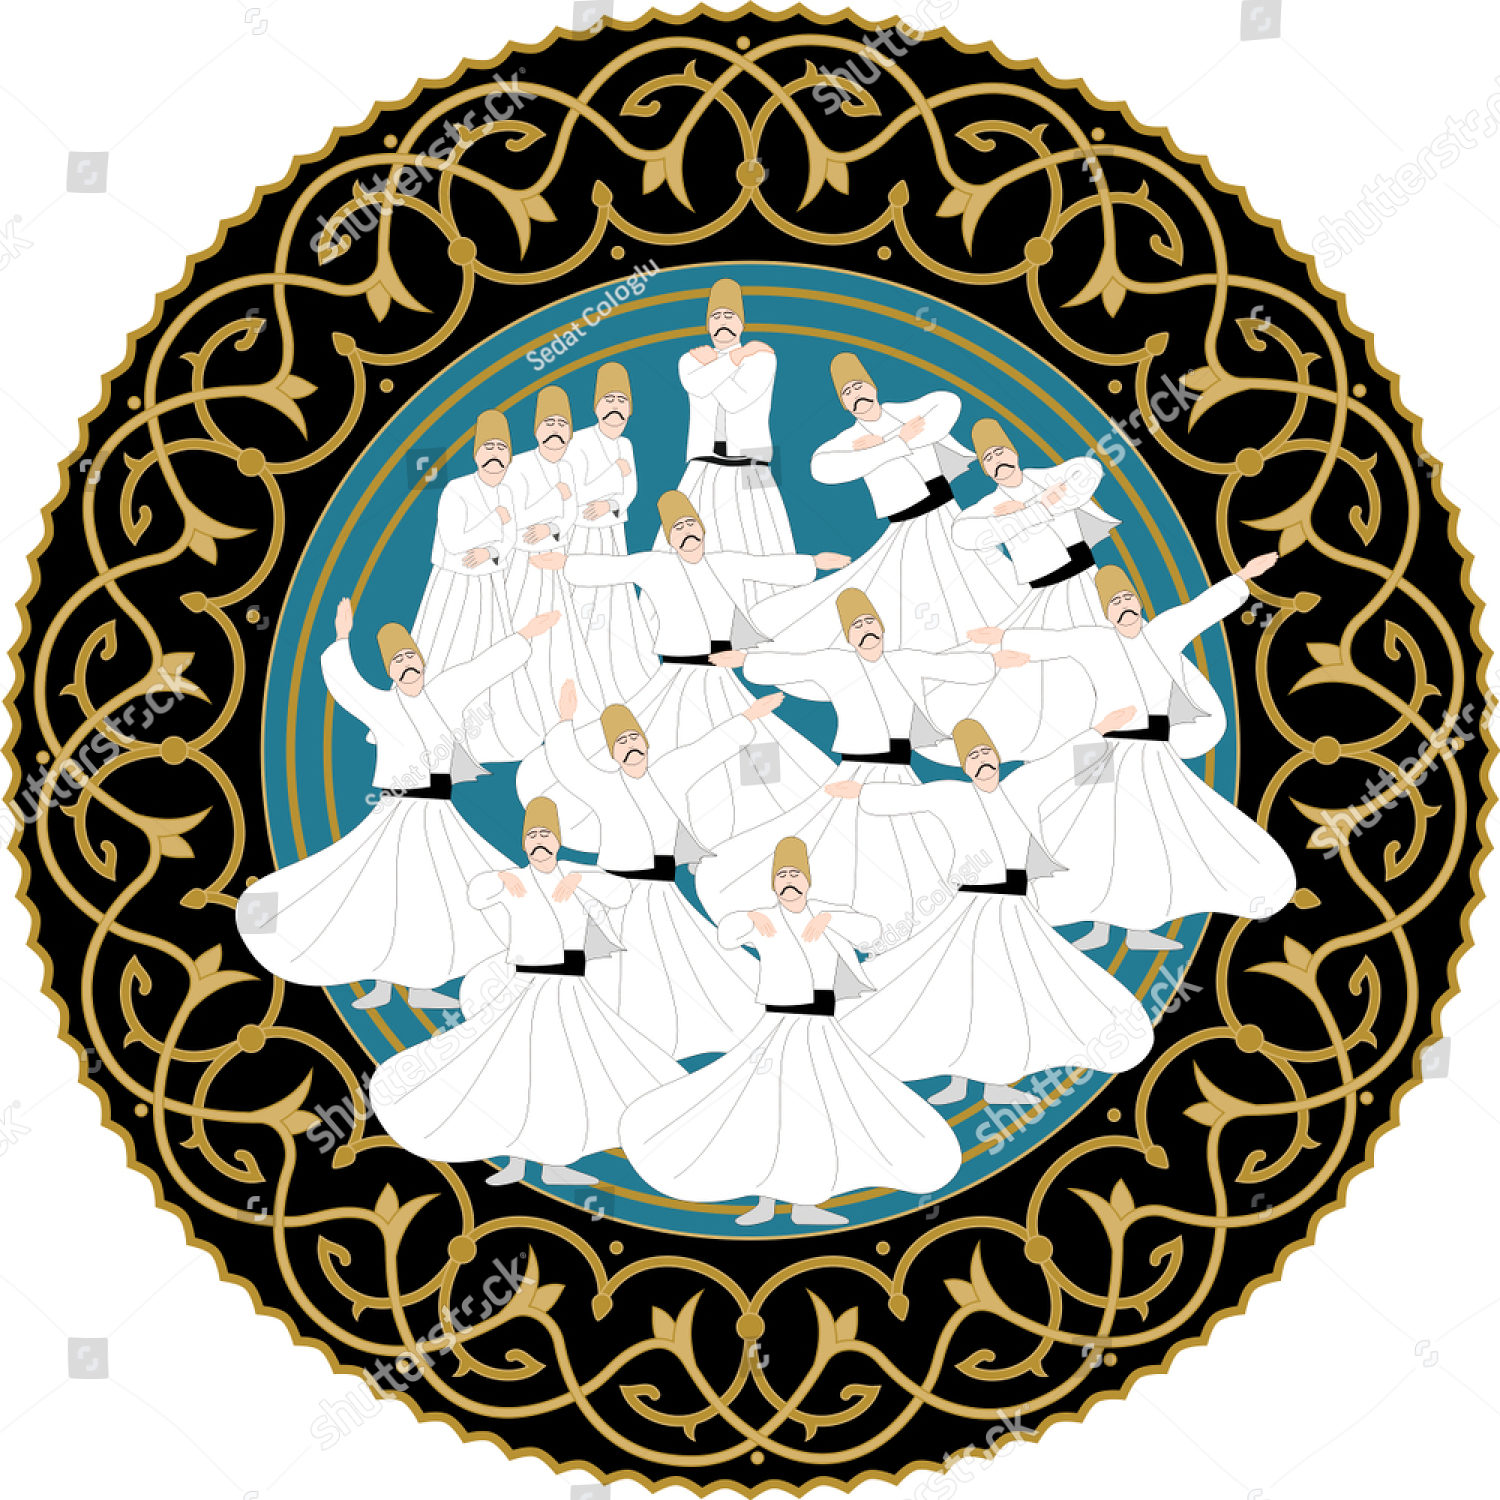 stock-vector-whirling-dervish-sufi-eps-format-vector-drawing-symbolic-study-of-mevlevi-mystical-dance-it-can-1275501628